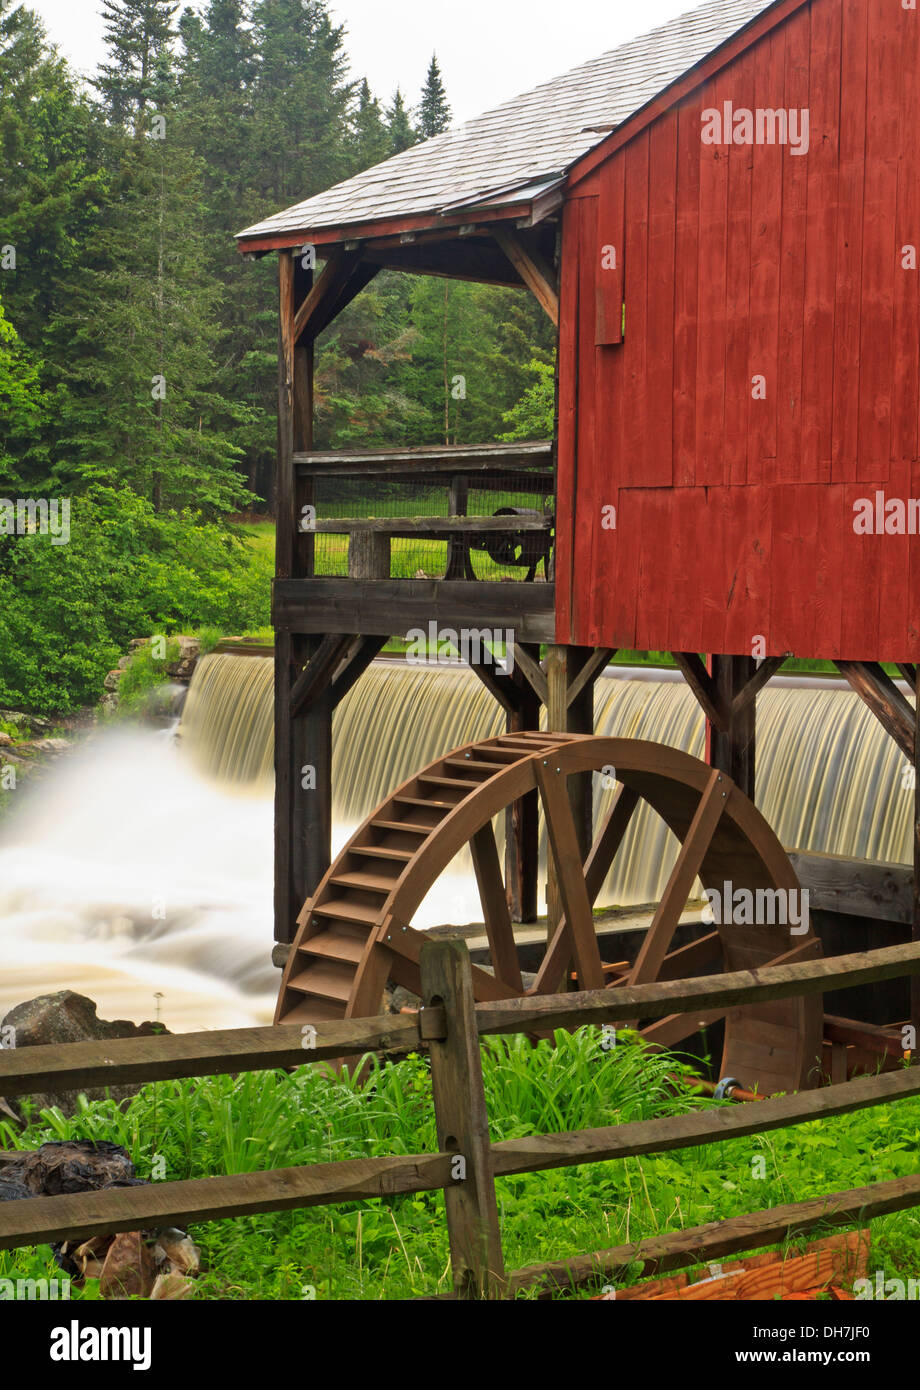 Water pours over a dam next to an old red mill with a water wheel near the Weston Playhouse in Weston, Vermont - Stock Image